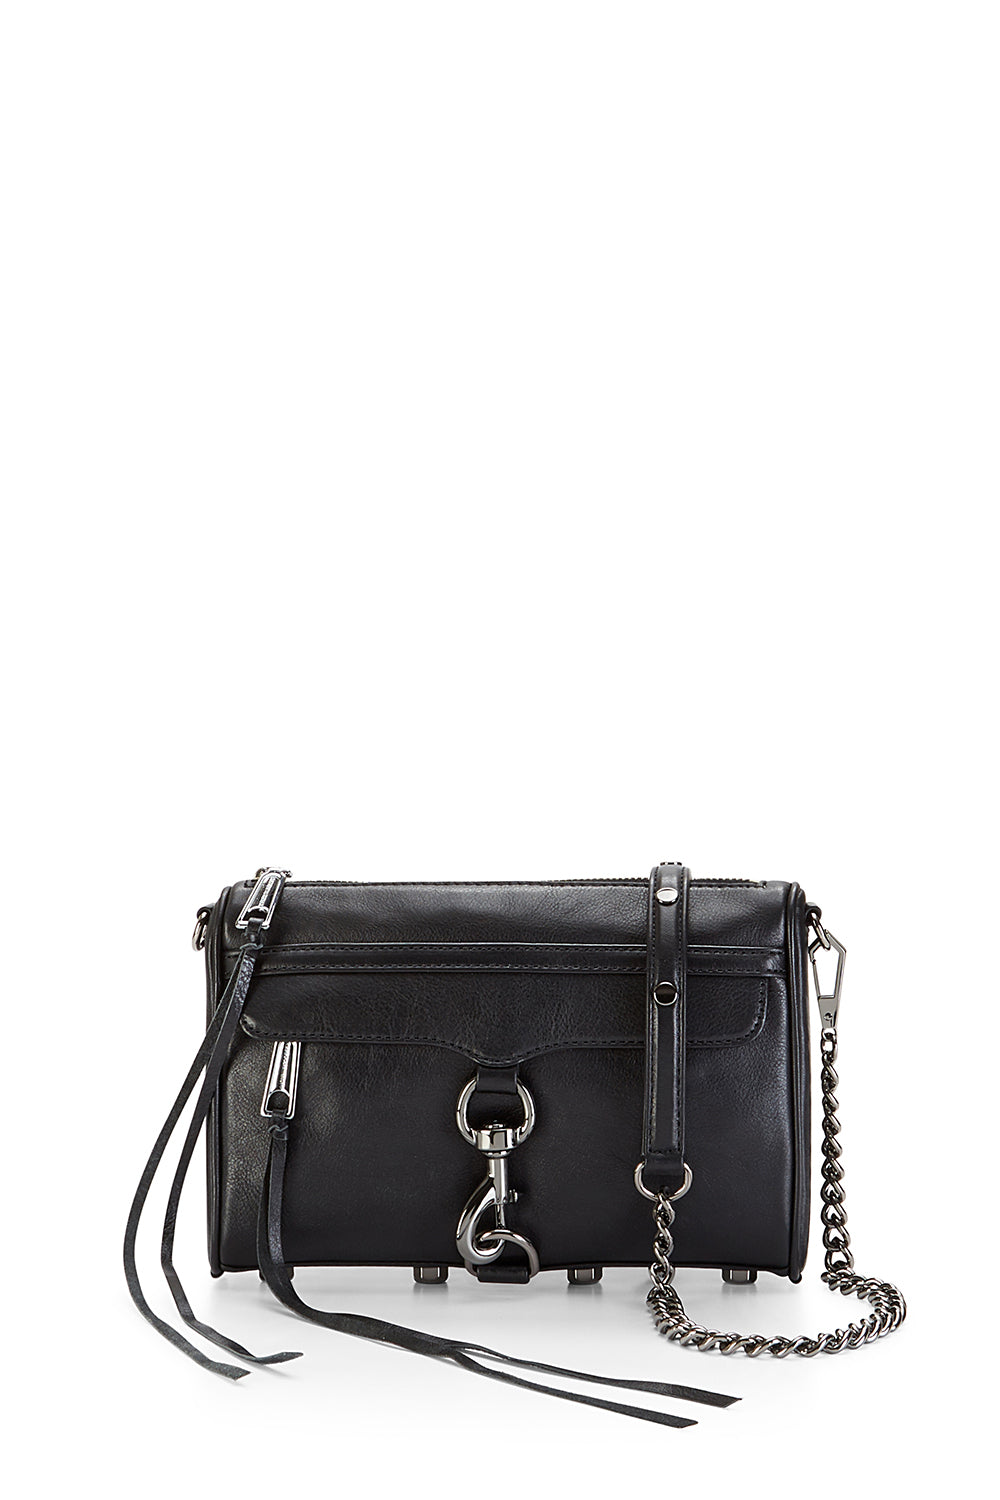 Black Gunmetal Mini M.A.C. Crossbody Bag   Rebecca Minkoff 177a8d9045